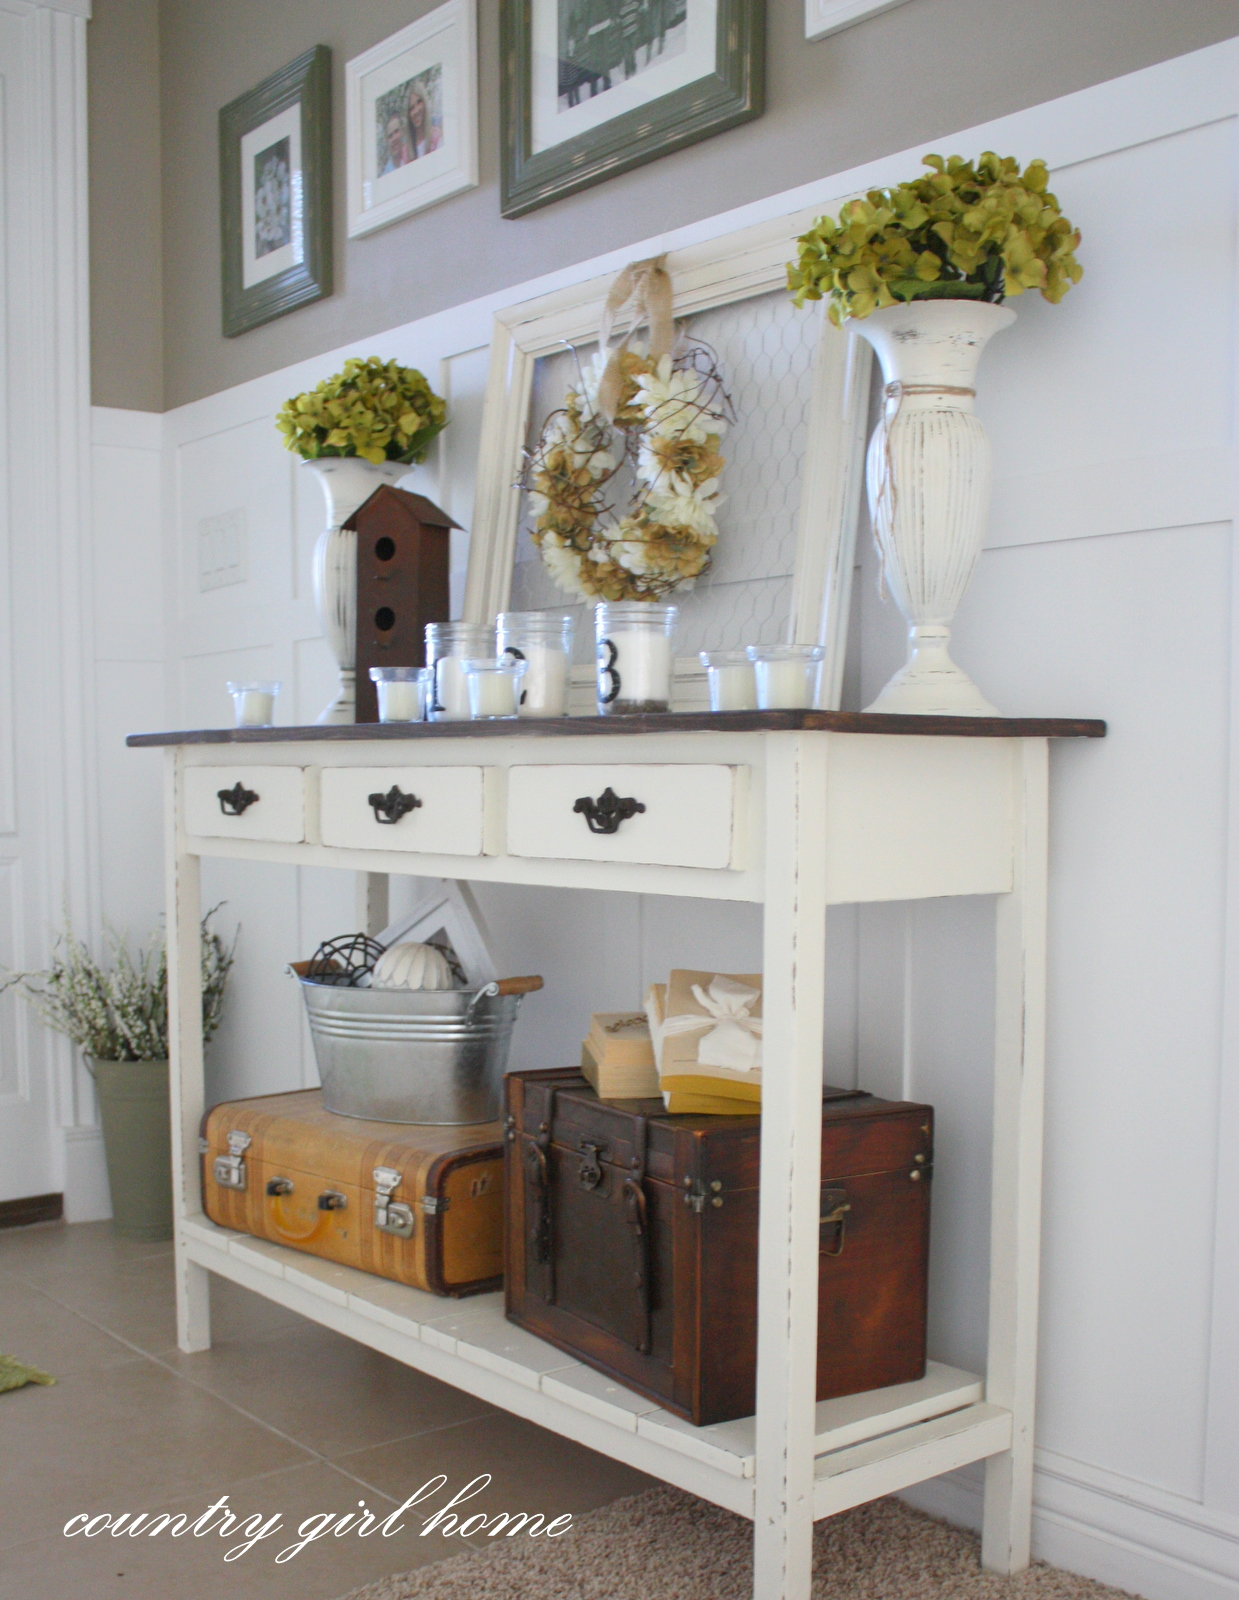 Country girl home added onto my diy entry table Entry table design ideas